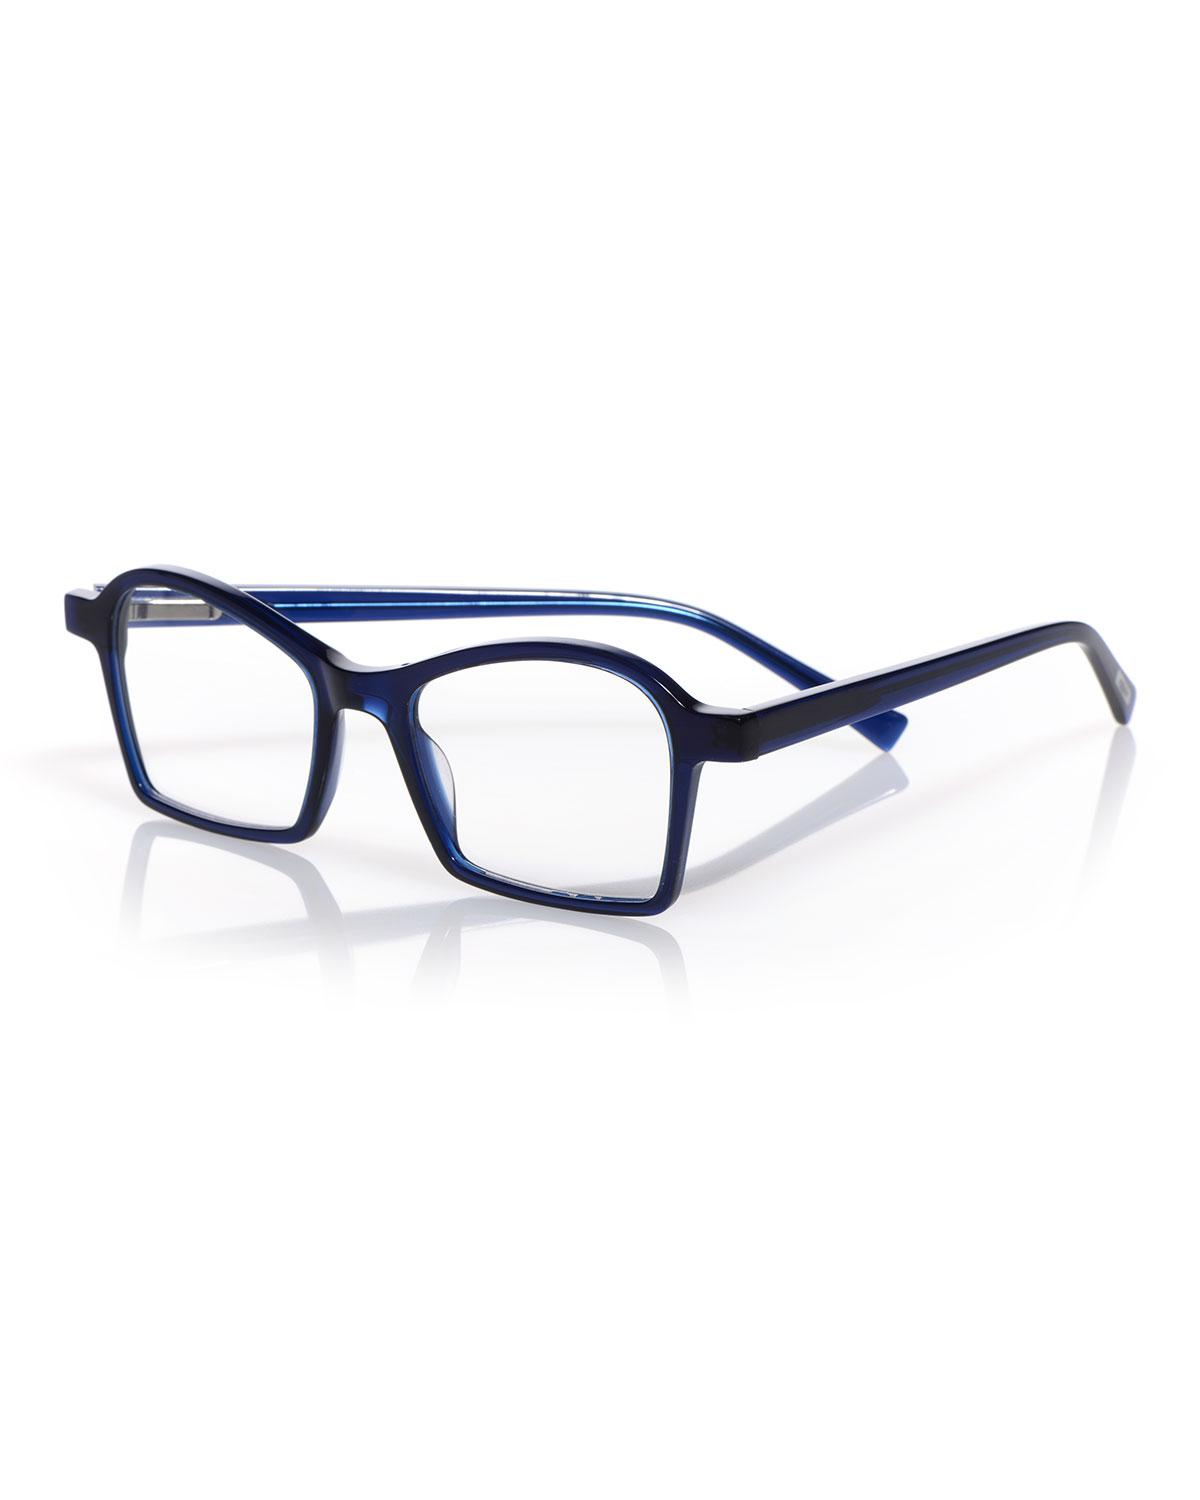 aa2ab4044ac Lyst - Eyebobs Sparkler Square Reading Glasses in Blue